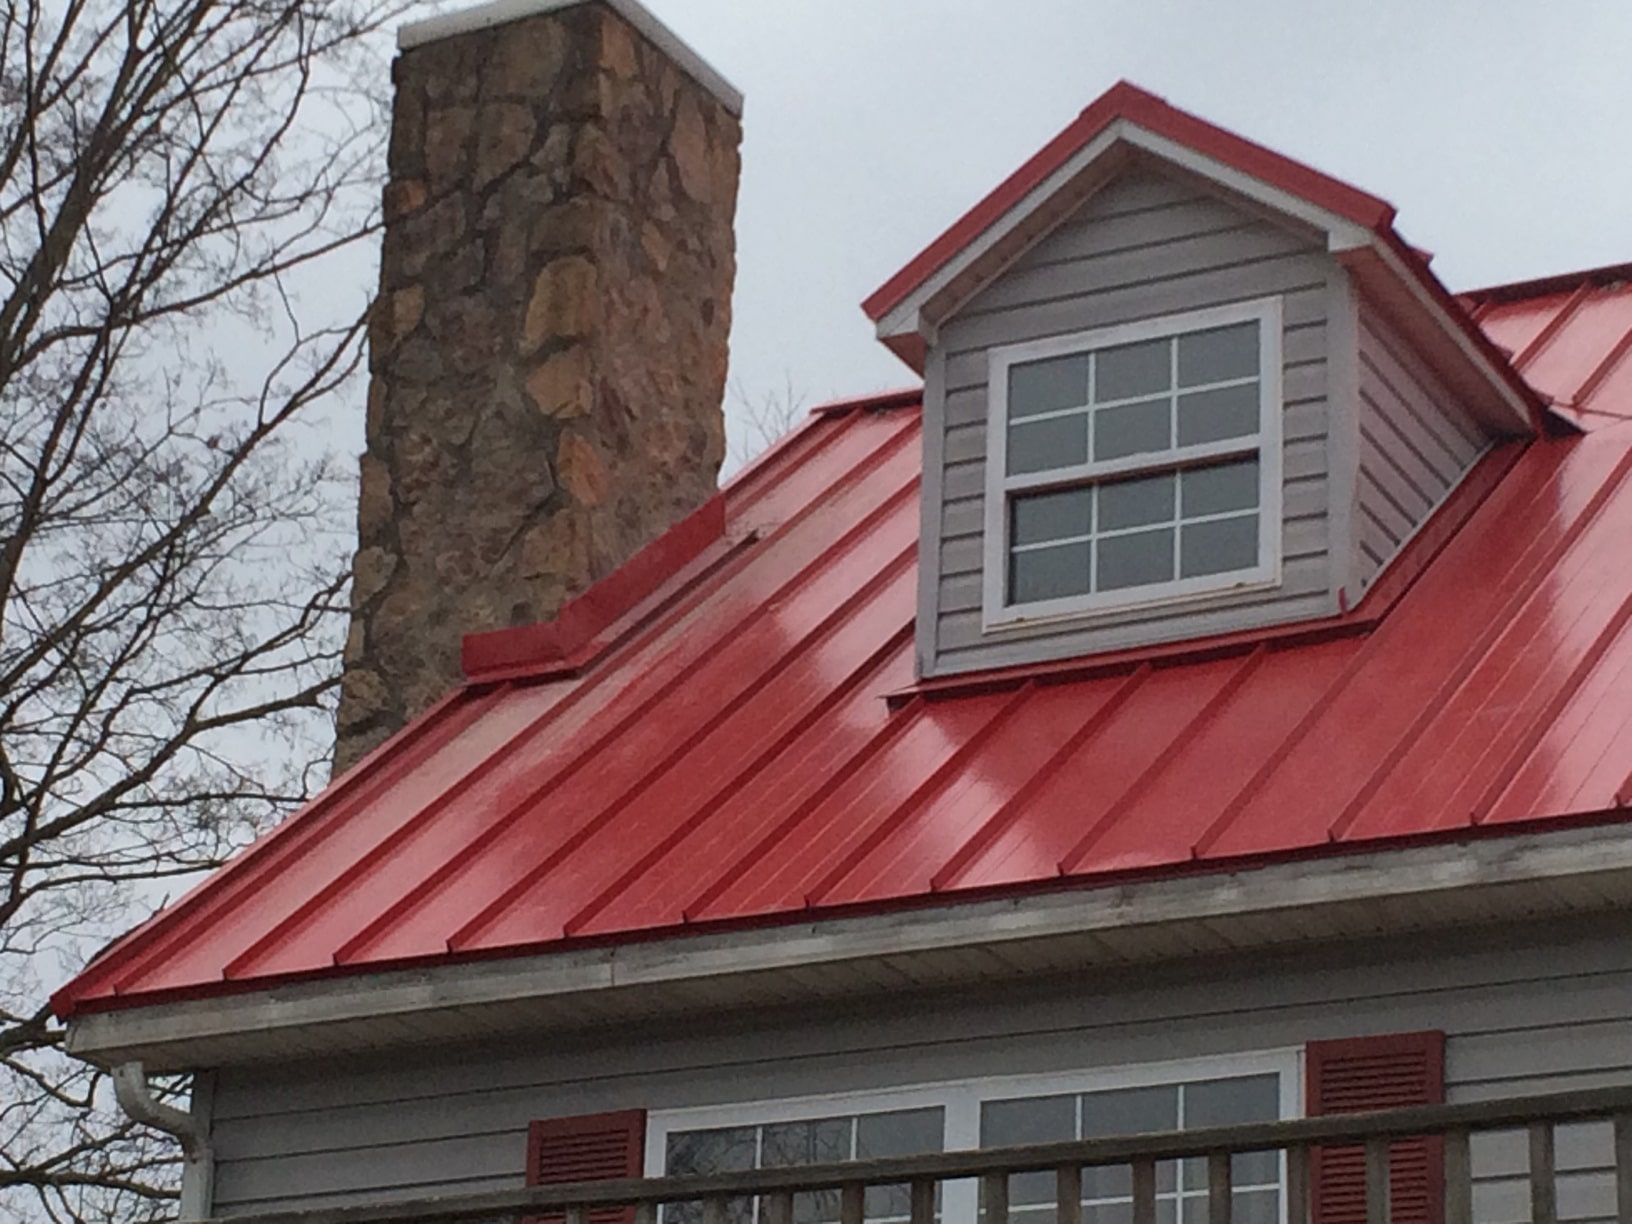 Red Roof Details